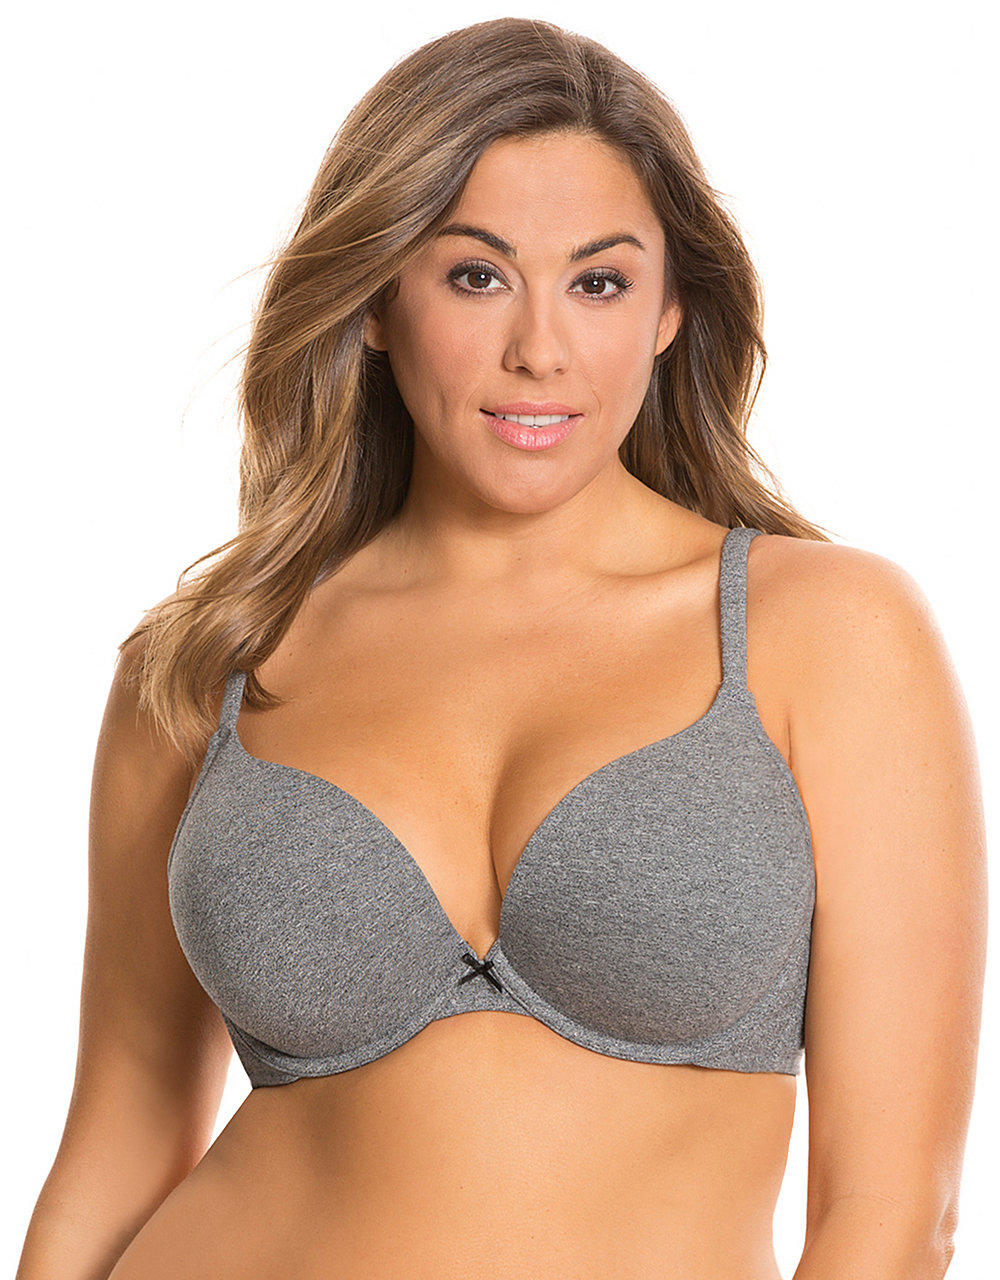 Cotton boost plunge bra | Lane Bryant from Lane Bryant ...